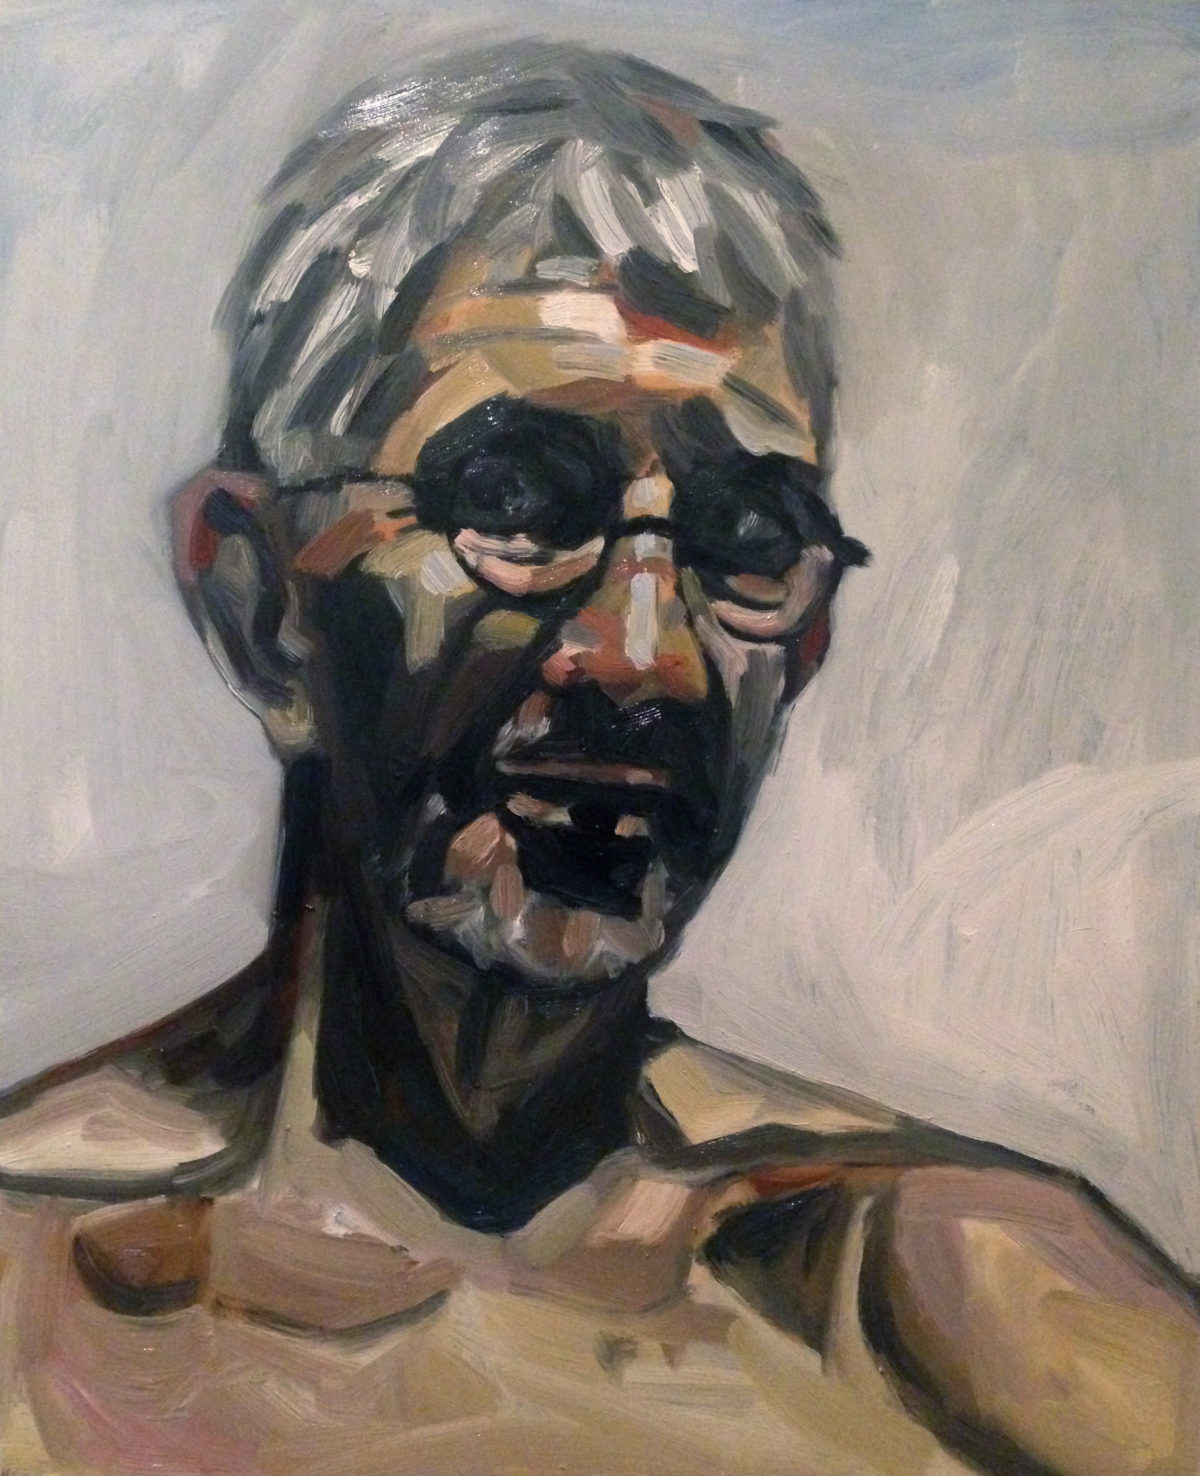 ken-wangat-lodge-oil-on-board-61x49cm-1700-shirley-hannan-portrait-award-finalist